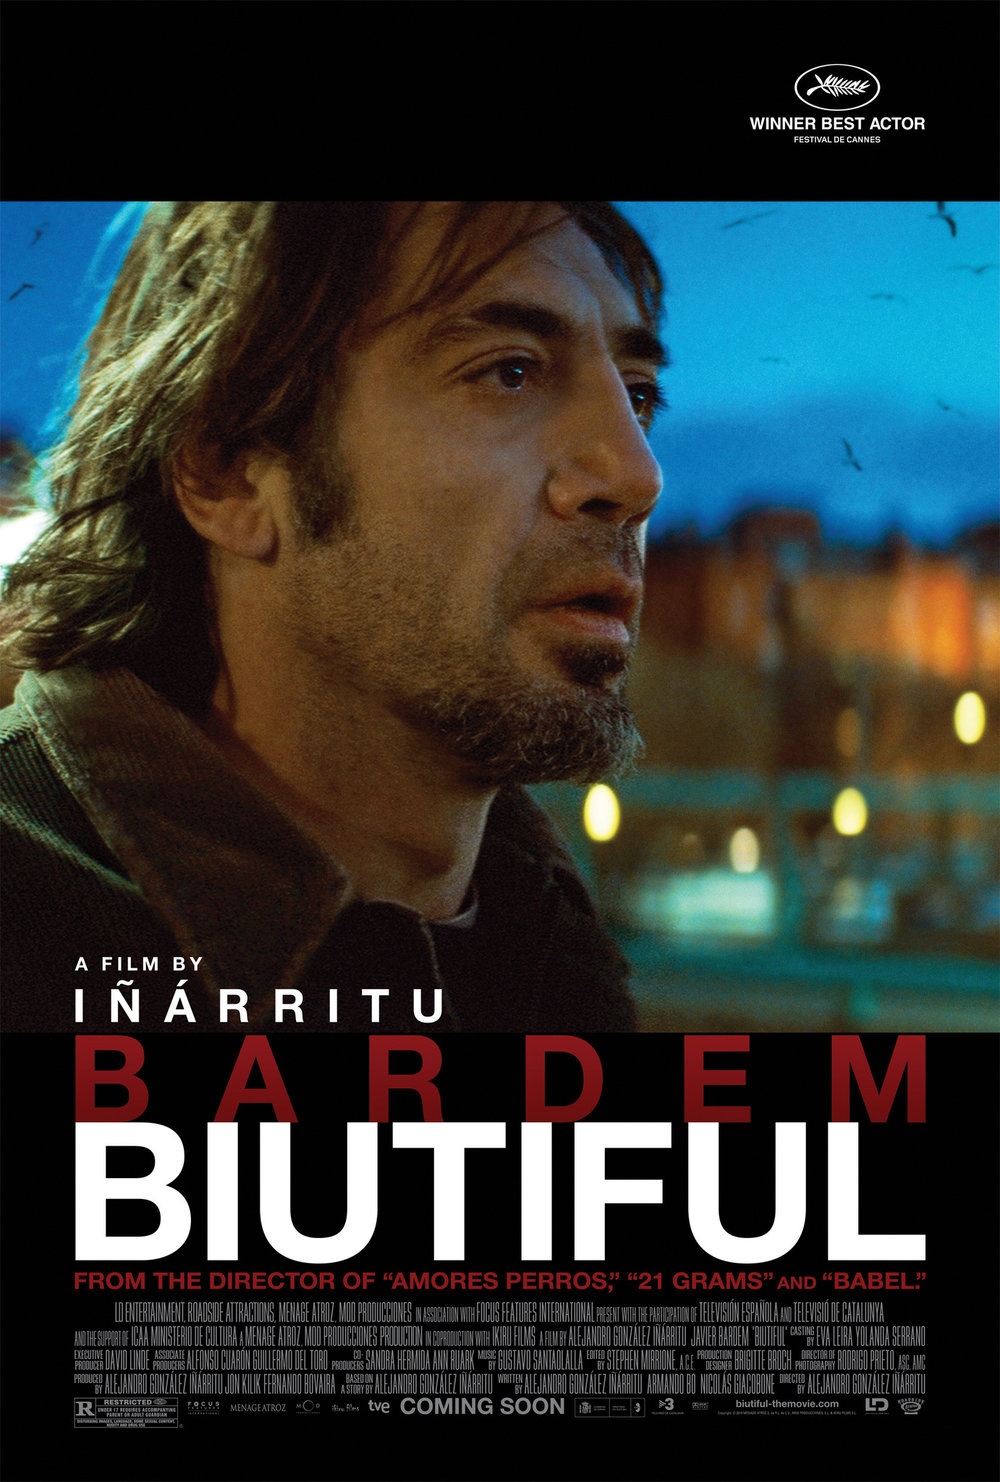 Biutiful (2010) - Directed by: Alejandro G InarrituStarring: Javier Bardem, Marcicel Alvarez, Hanaa BouchaibRated: R for Disturbing Images, Language, Some Sexual Content, Nudity and Drug UseRunning Time: 2 h 28 mTMM Score: 3.5 stars out of 5STRENGTHS: Acting, Directing, Story StructureWEAKNESSES: Length, Requires Patience, Disturbing Content and Themes Will Deter Some Viewers